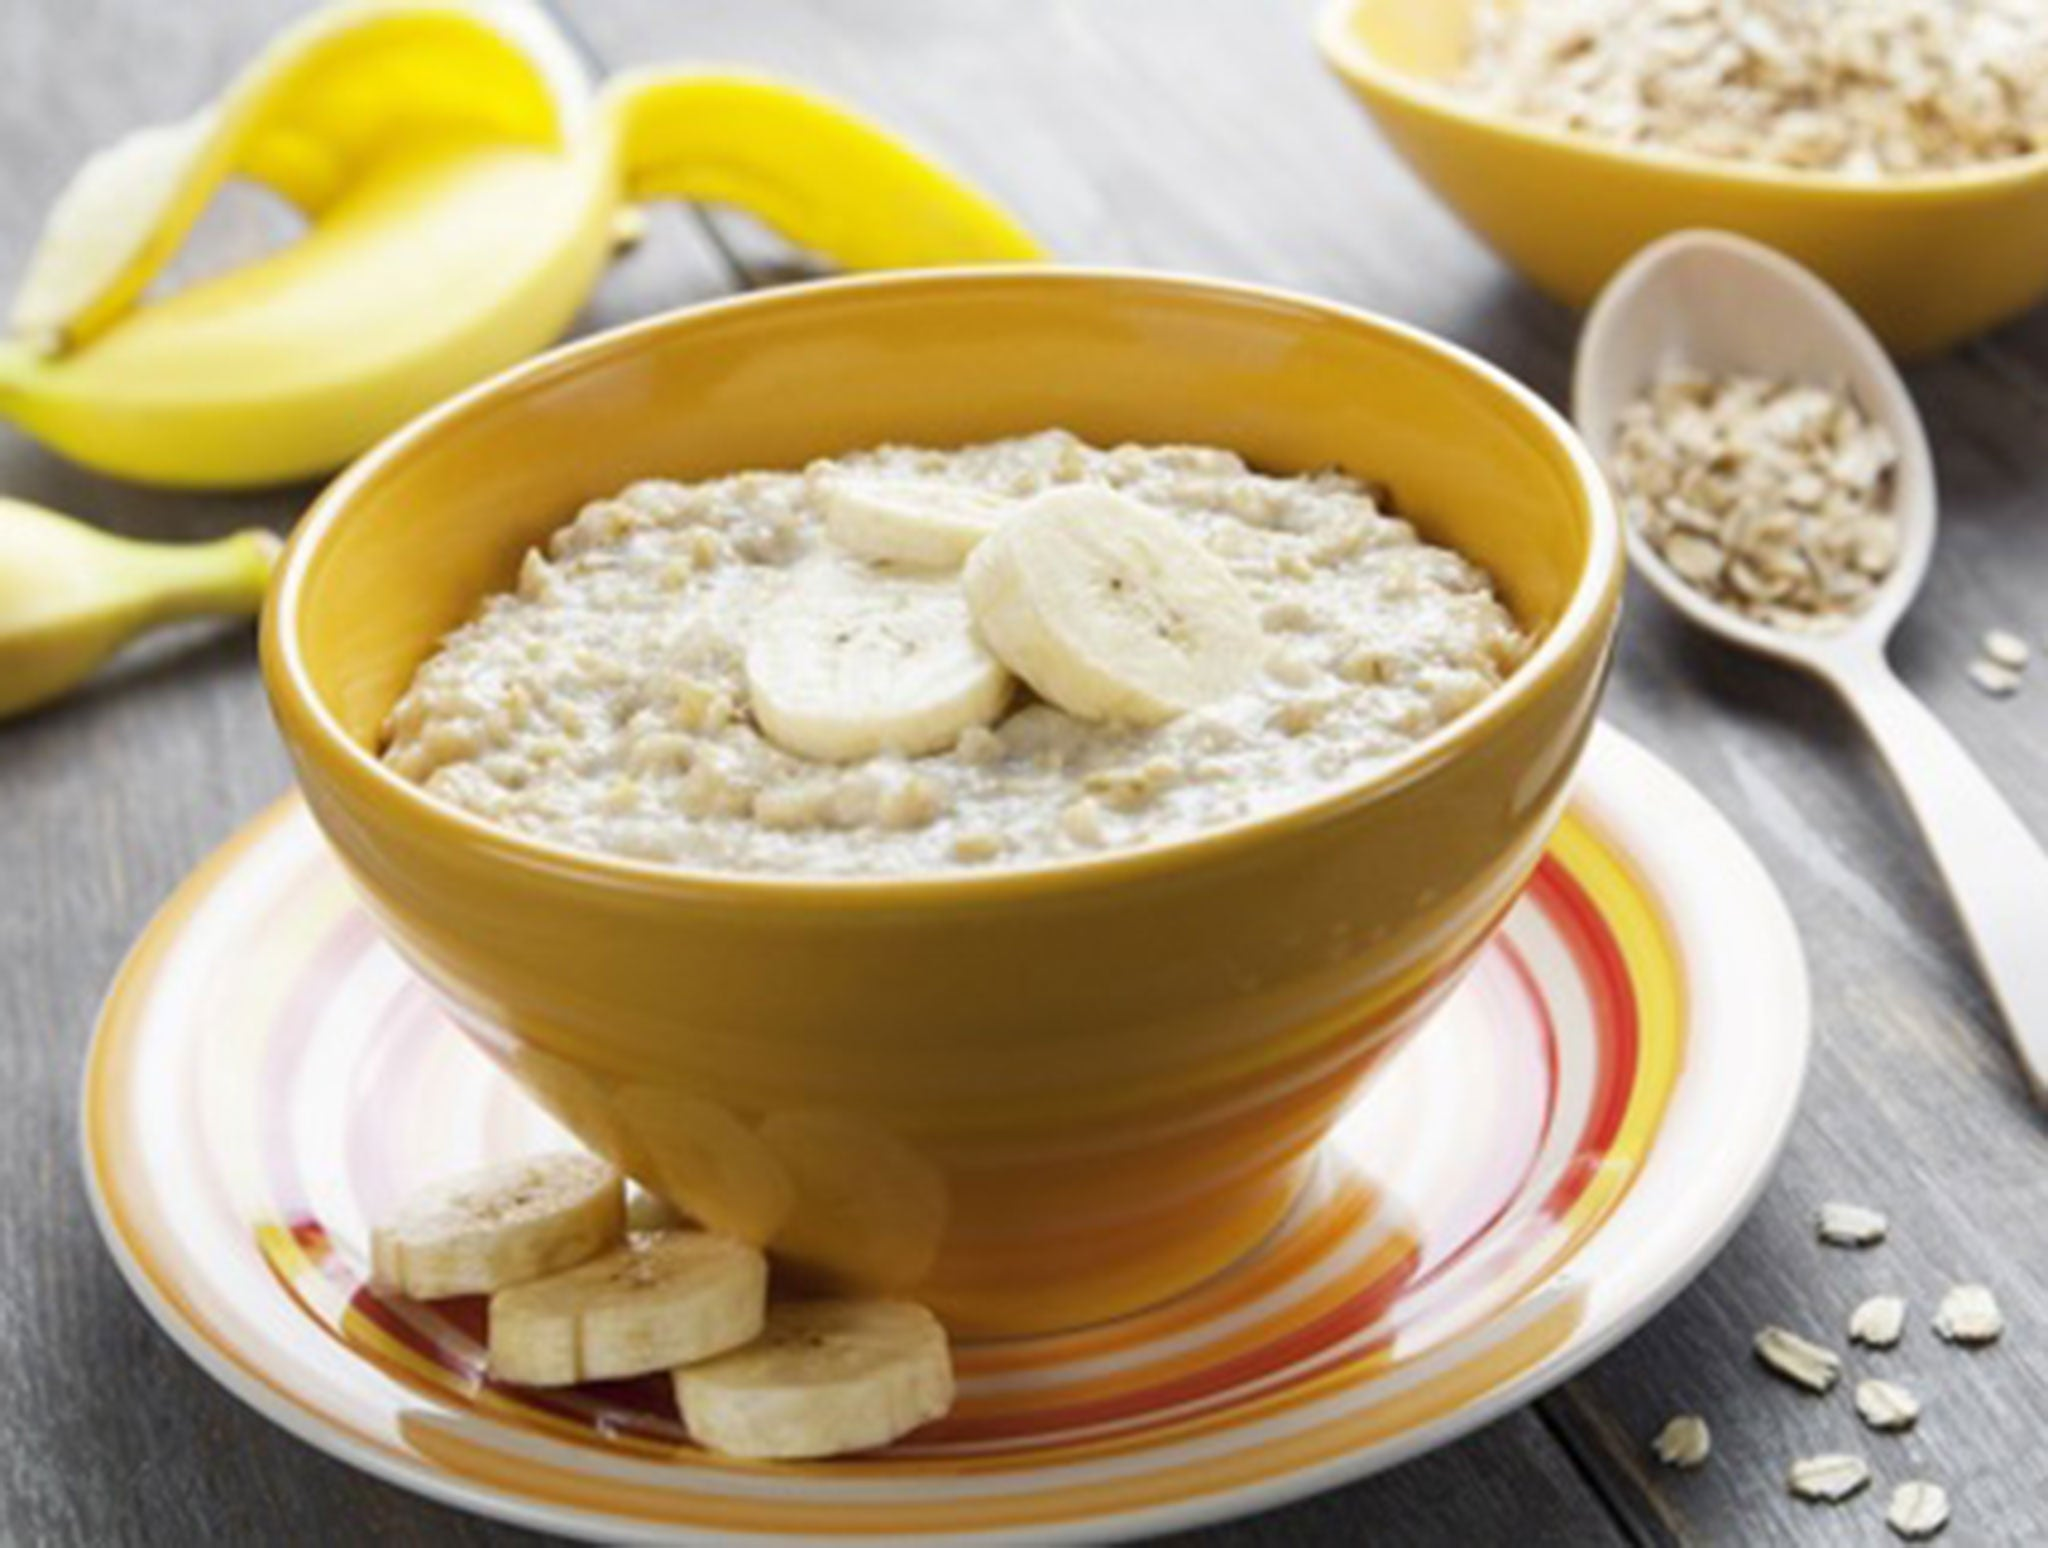 Eating porridge reduces your chances of dying from cancers, finds major Harvard University study